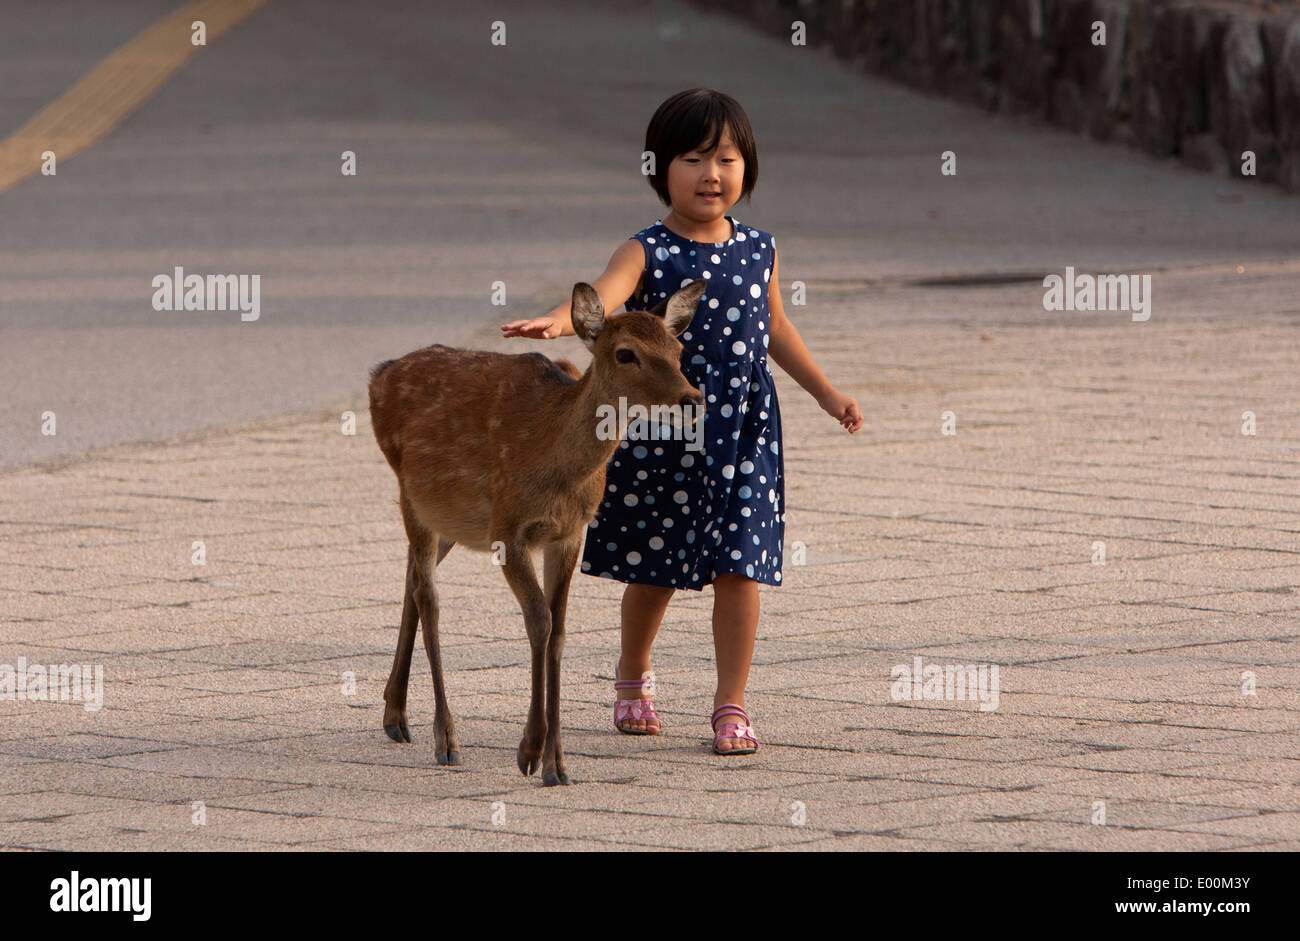 Sitka deers roam free in the island of Itsukushima in the western part of the Inland Sea of Japan, northwest of - Stock Image